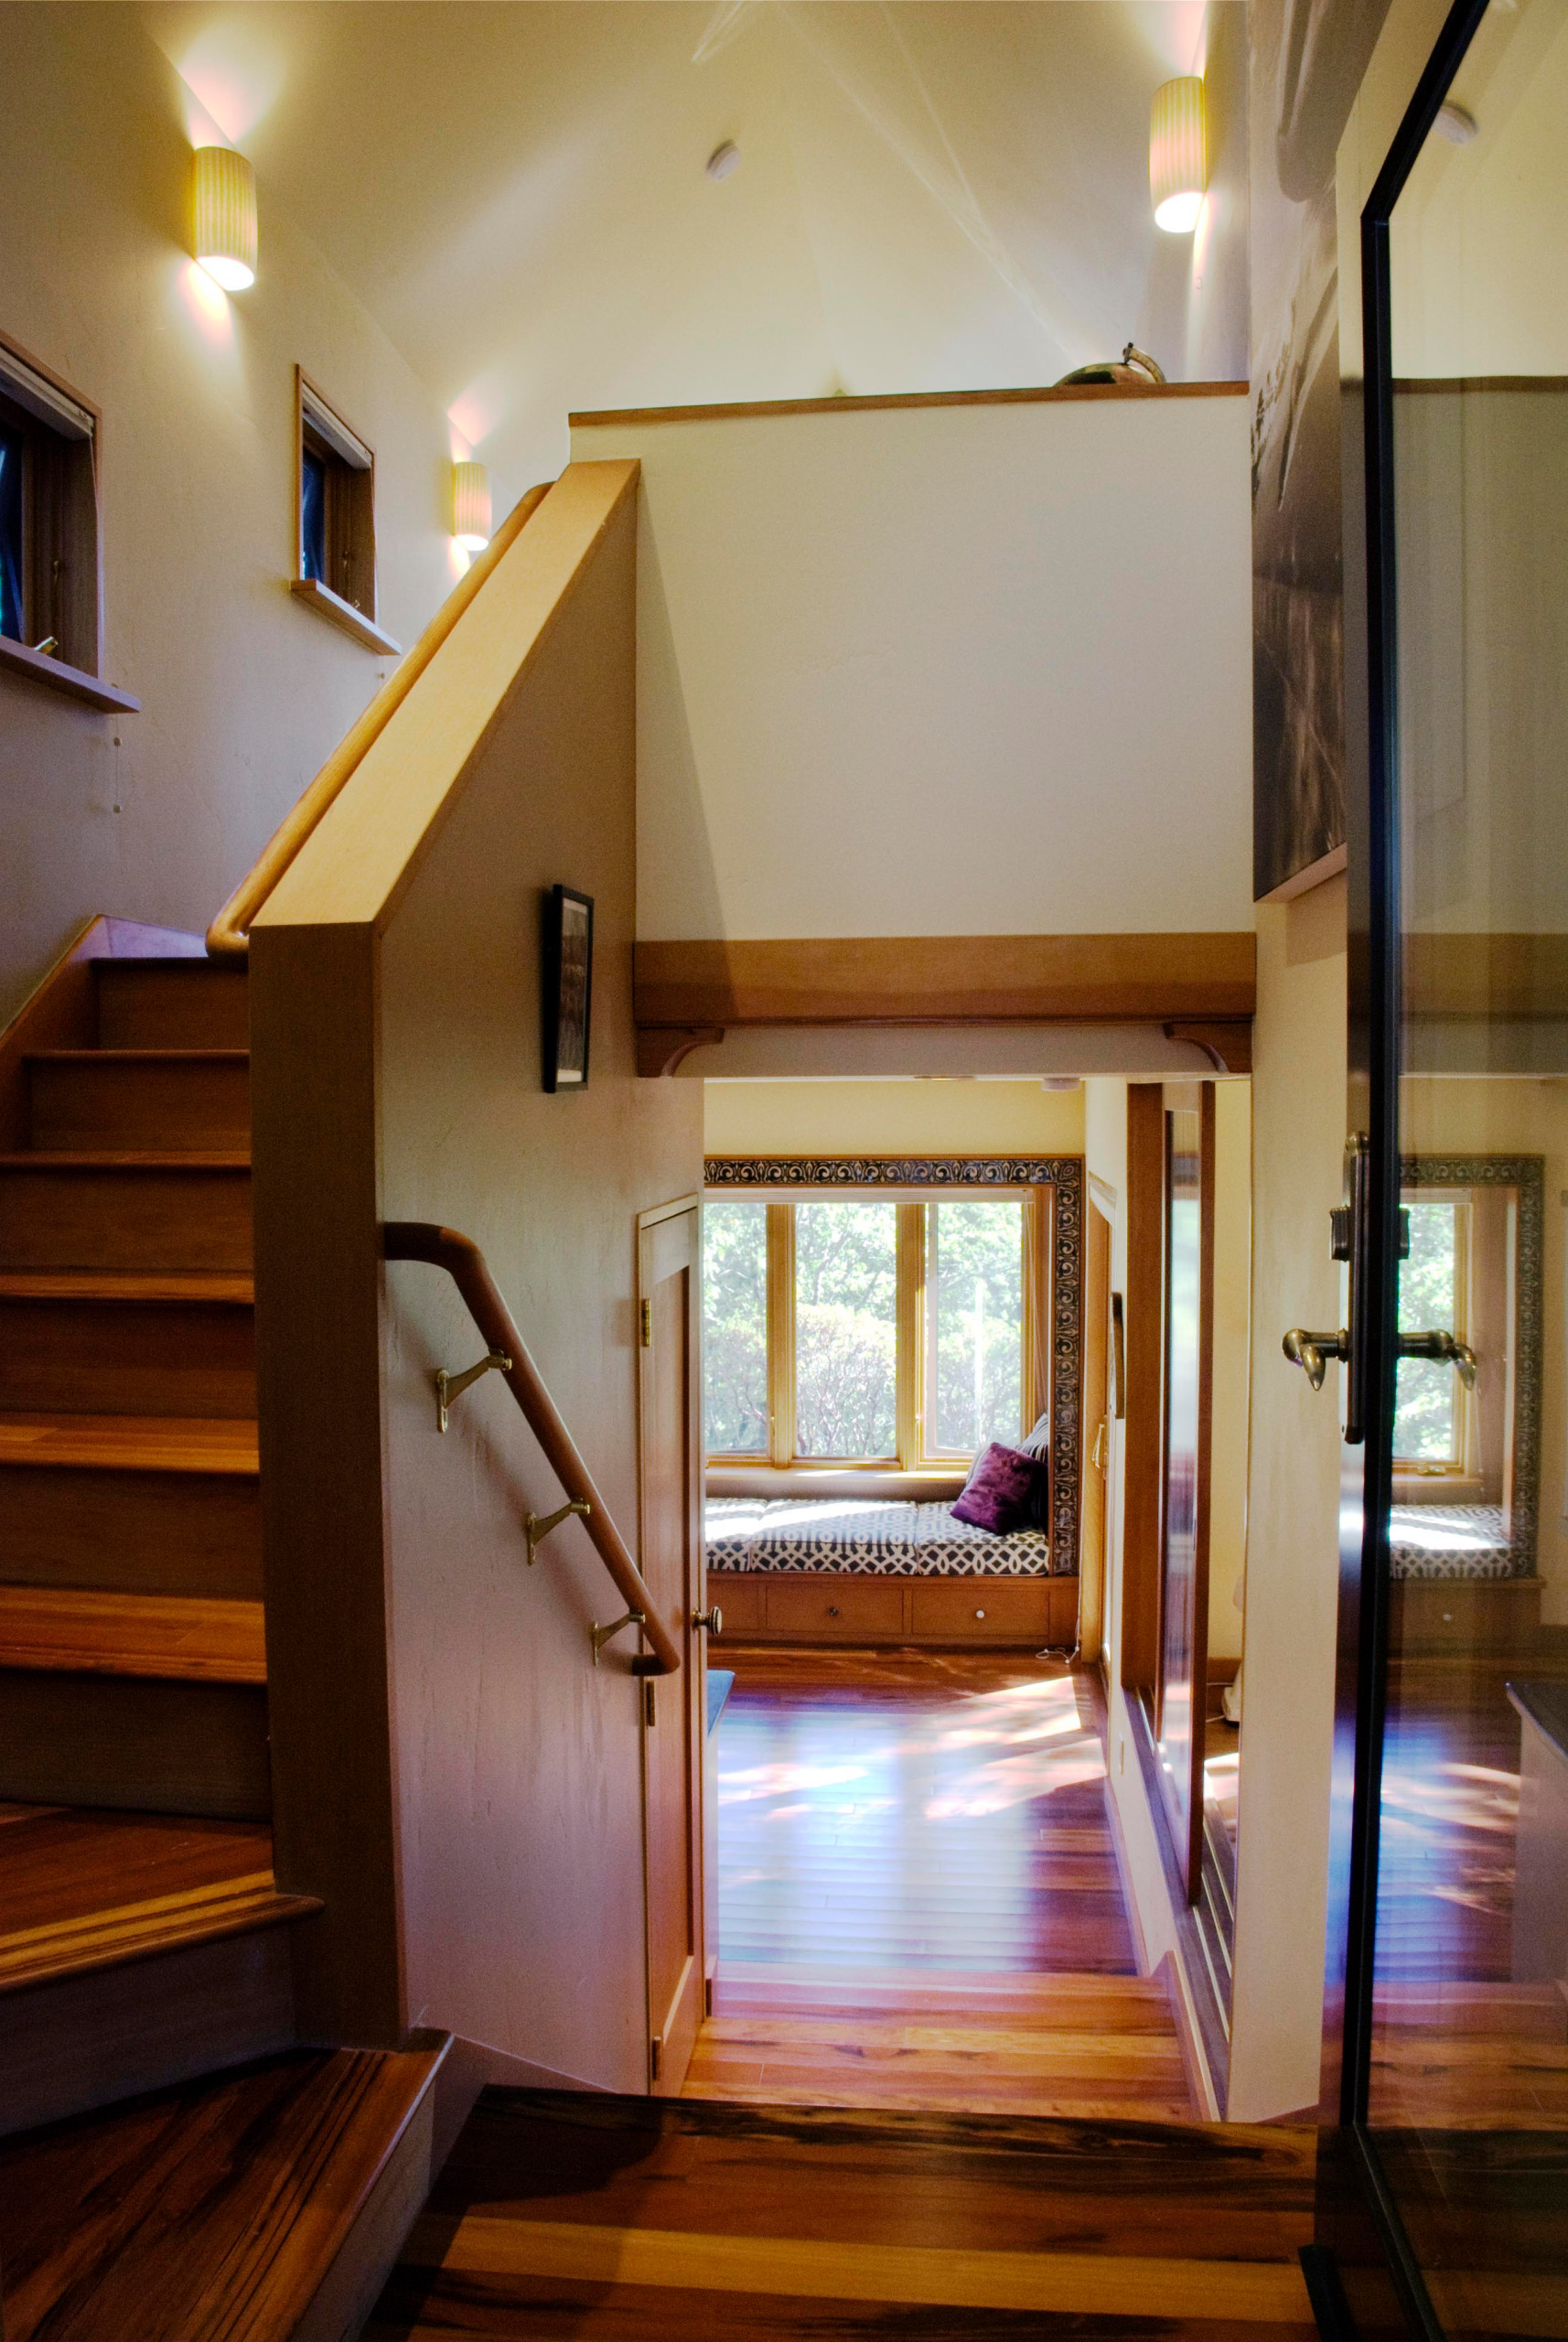 Entry with view to loft above and window seat below